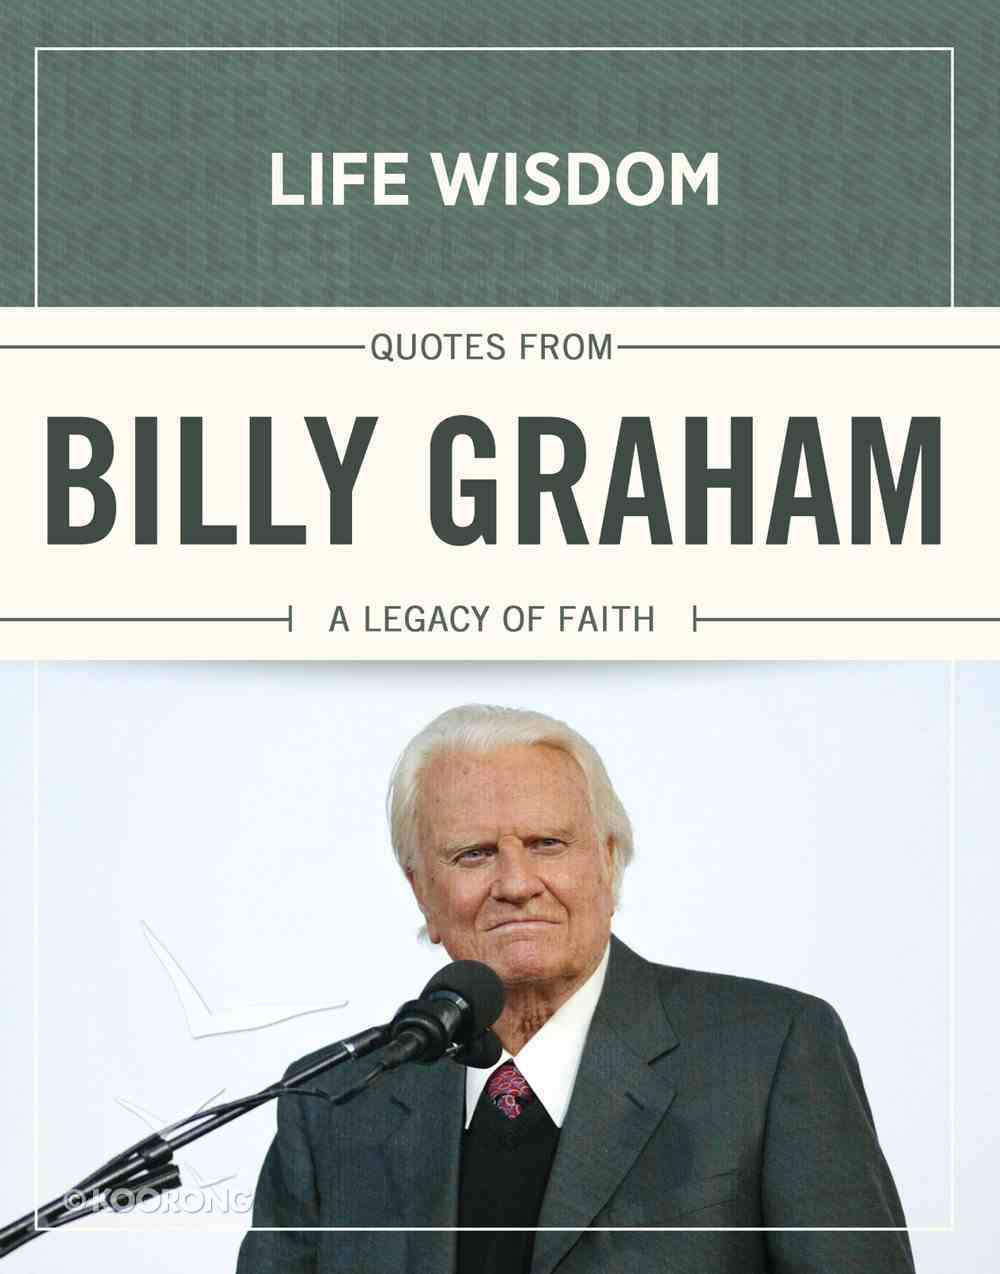 Quotes From Billy Graham (Life Wisdom Series) eBook